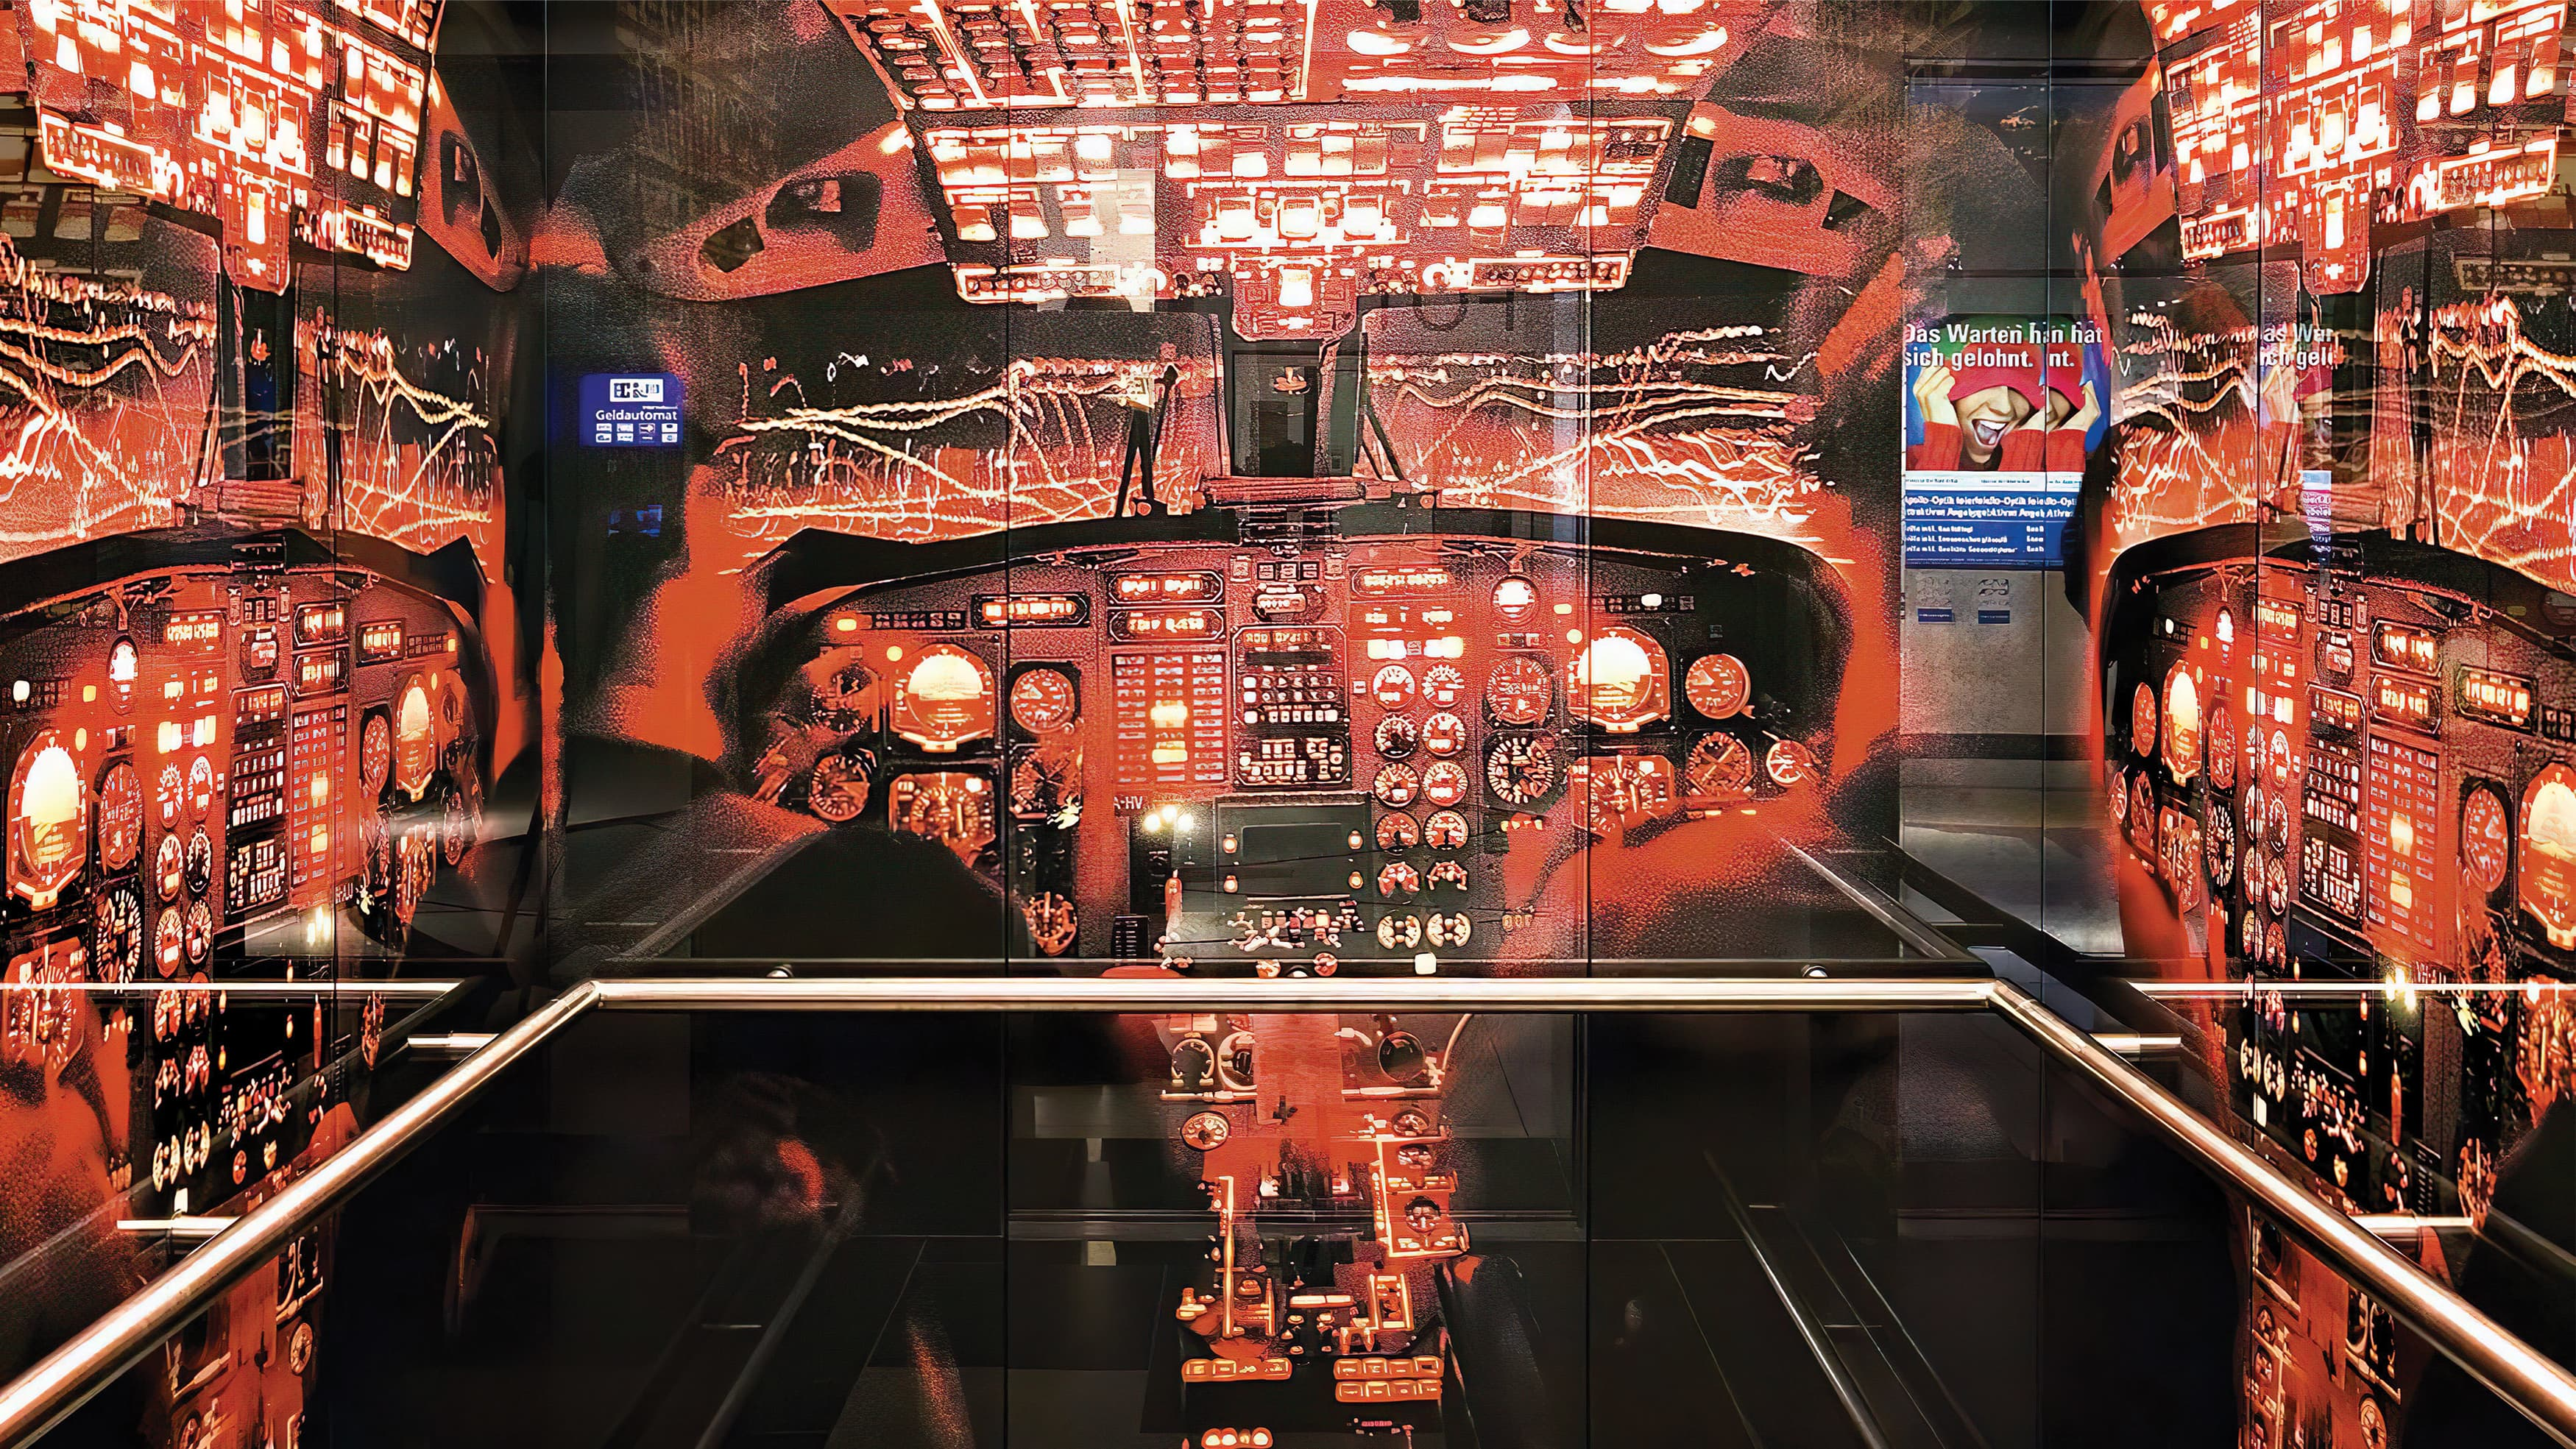 Interior of an elevator with plane cockpit graphics.